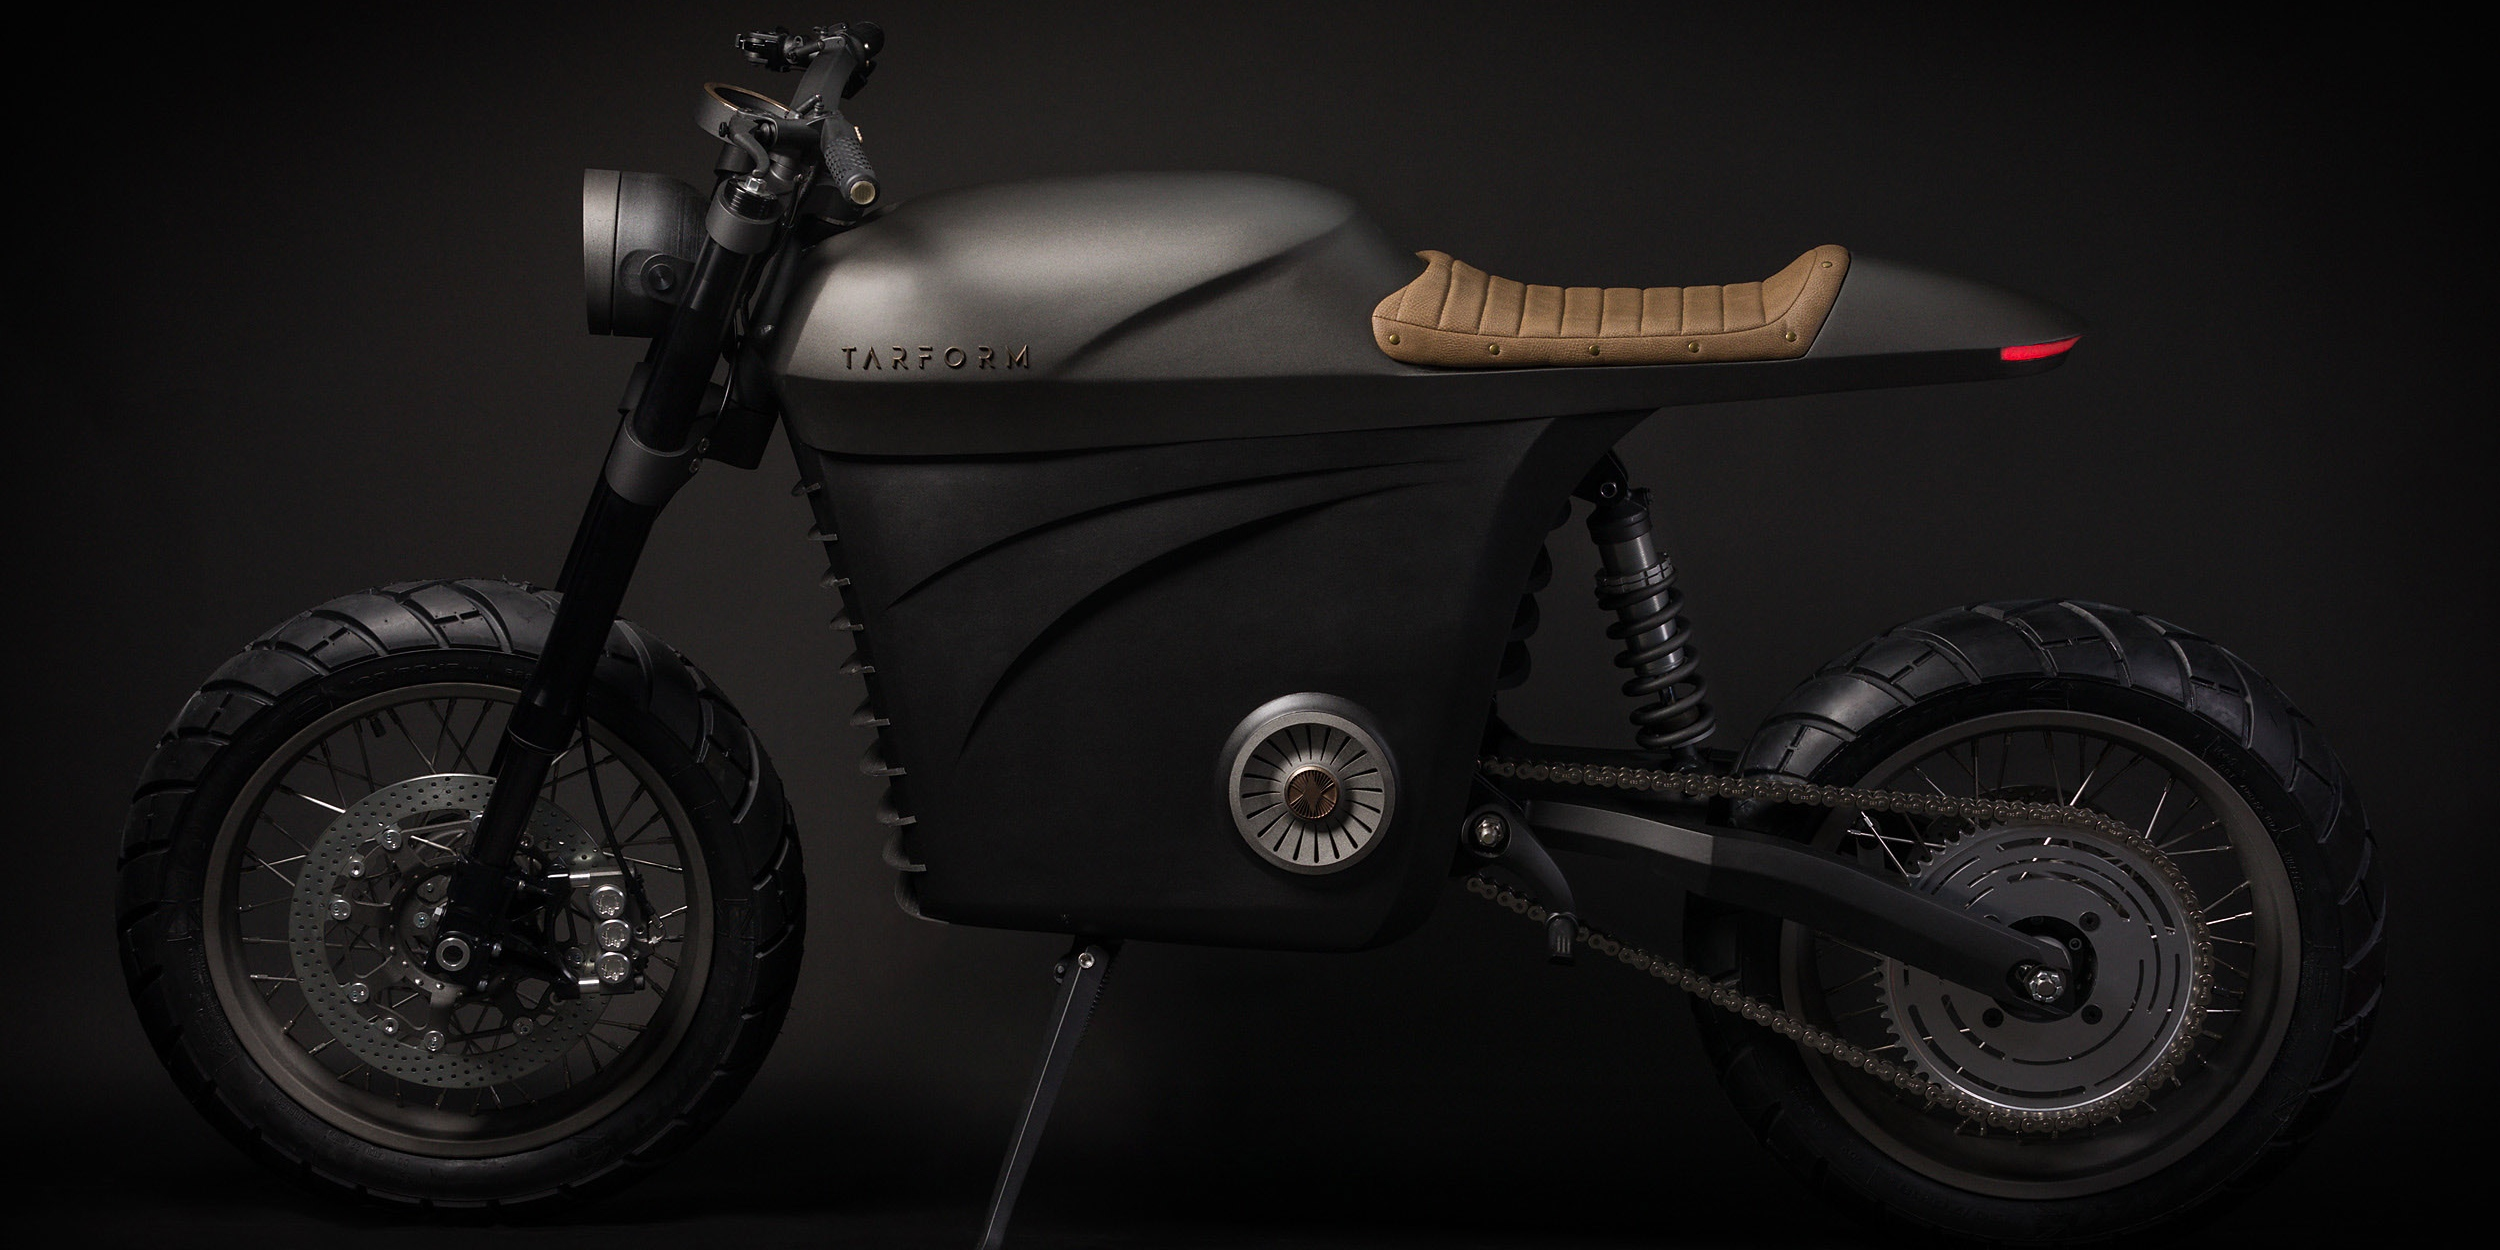 New US startup Tarform Motorcycles unveils their first electric motorcycle